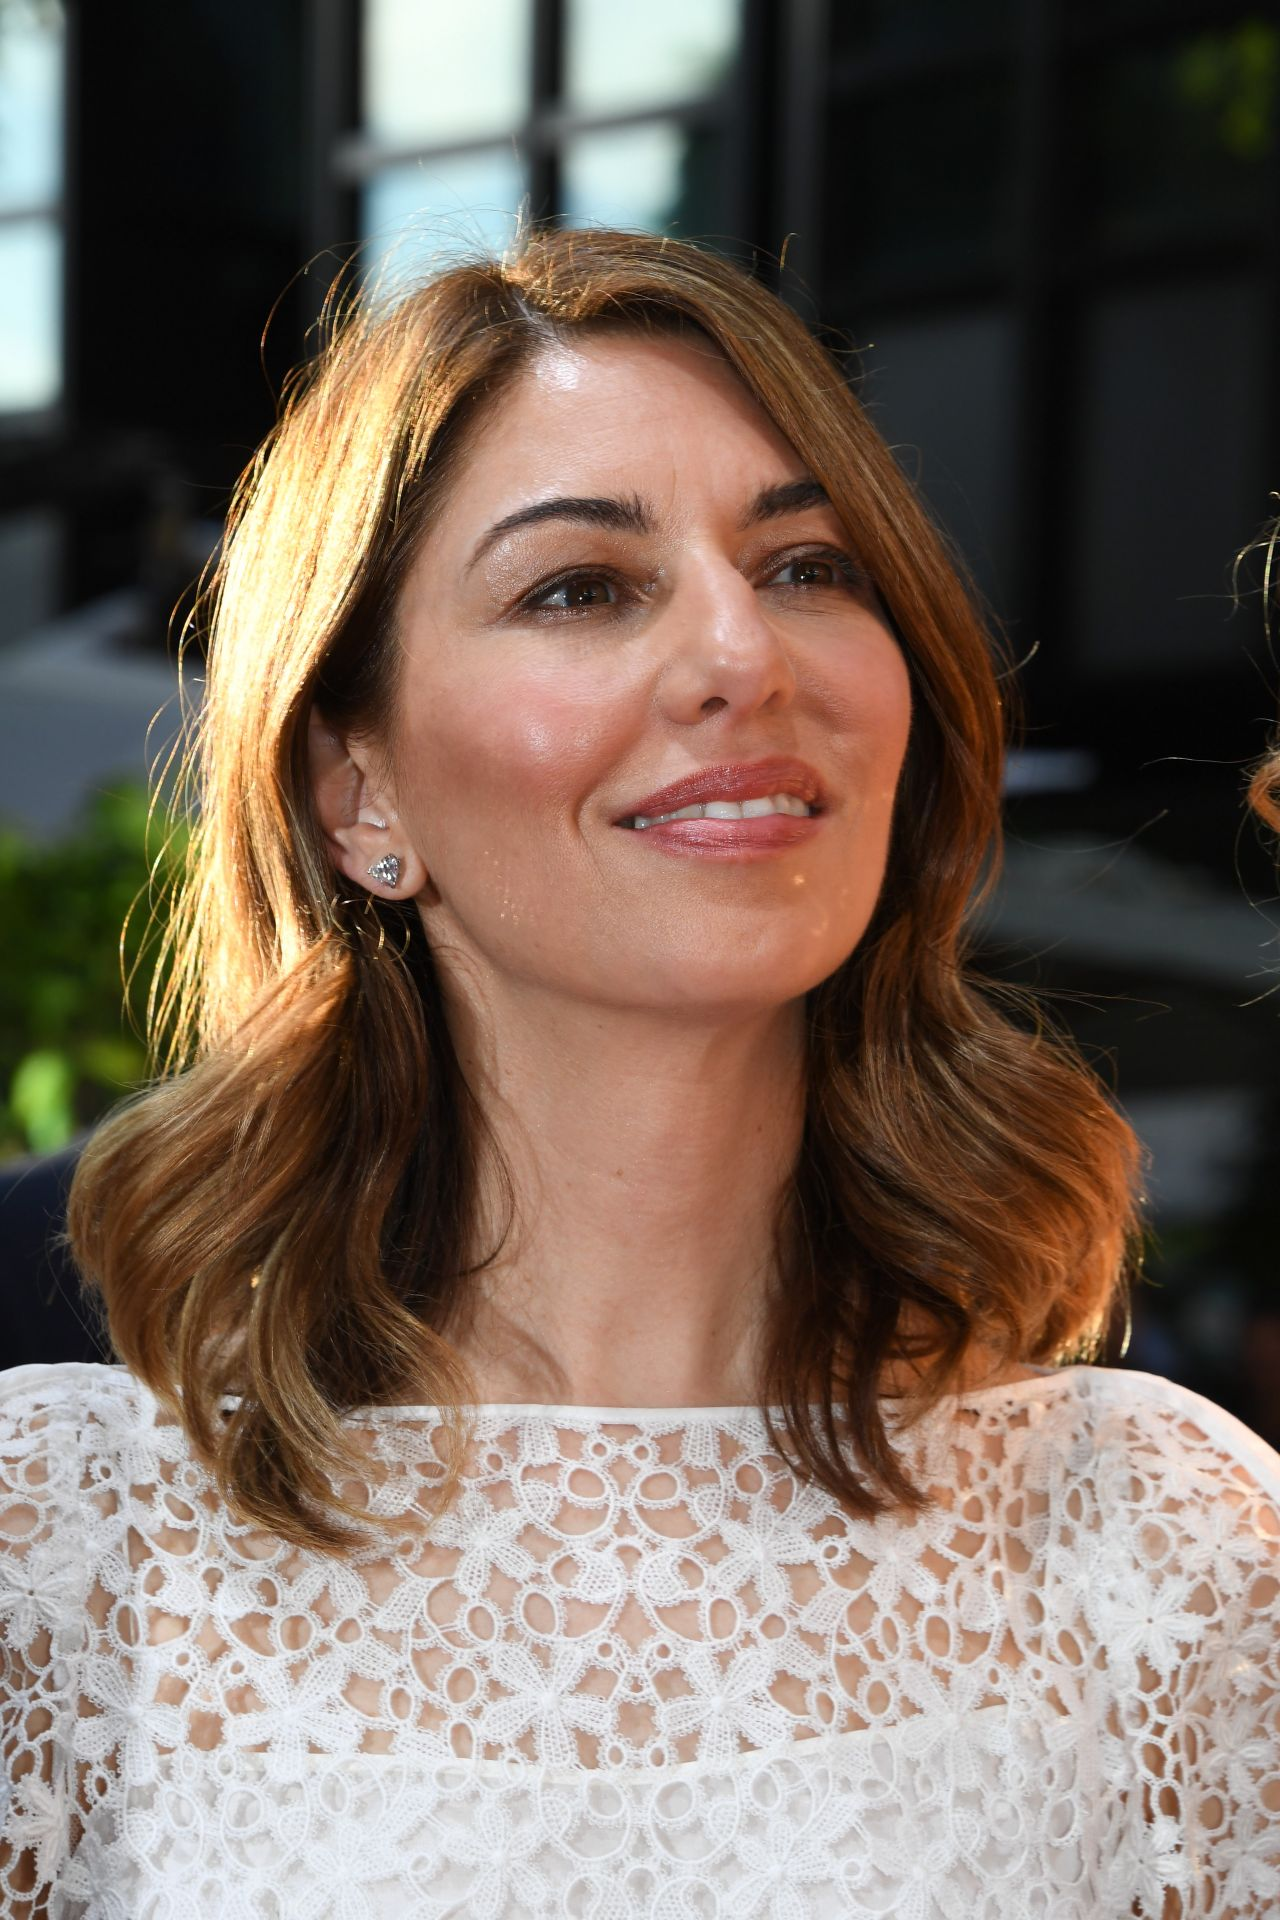 Sofia Coppola Quot The Beguiled Quot Premiere In Munich Germany